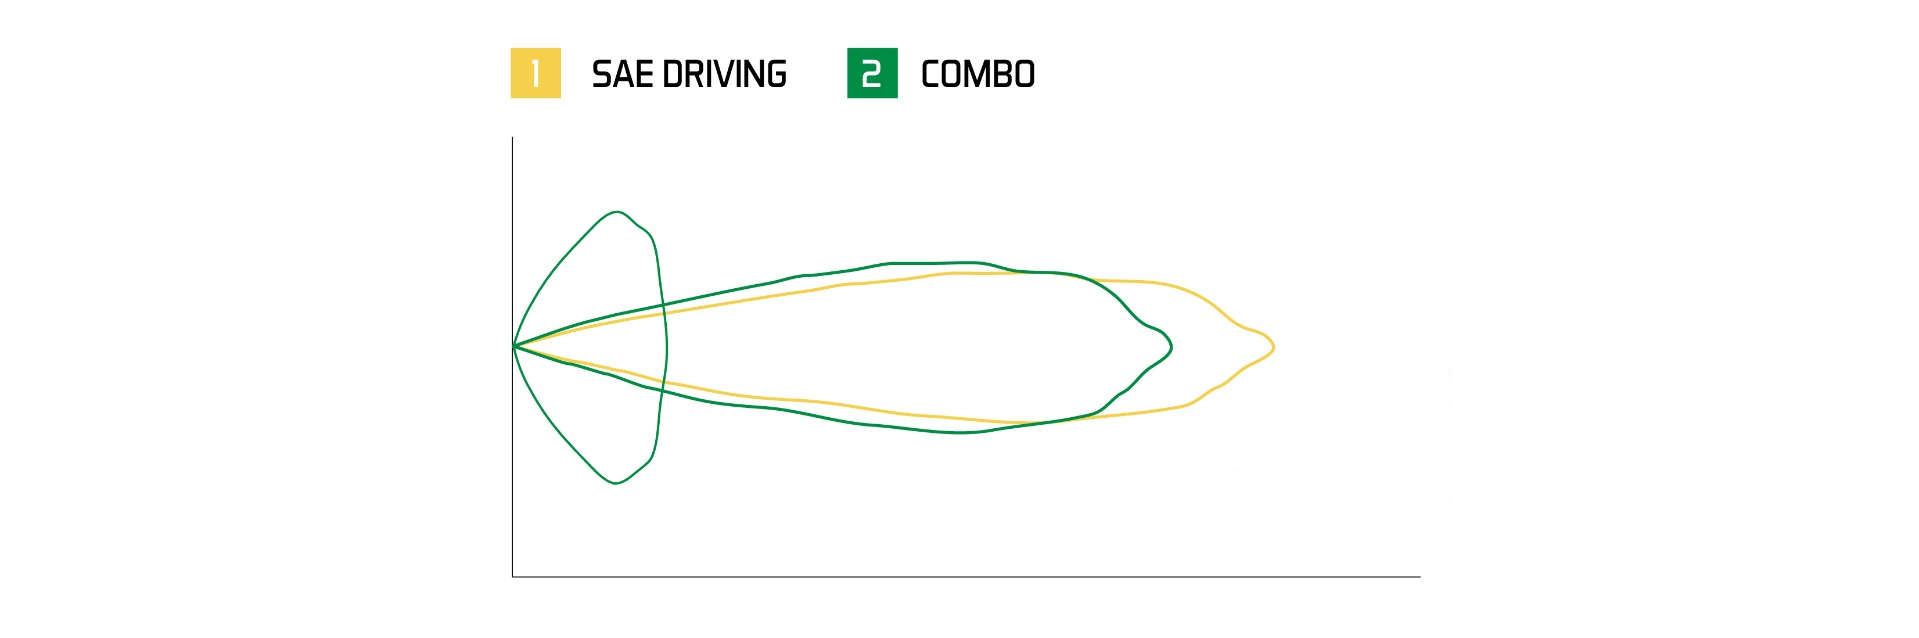 Driving and Combo optic